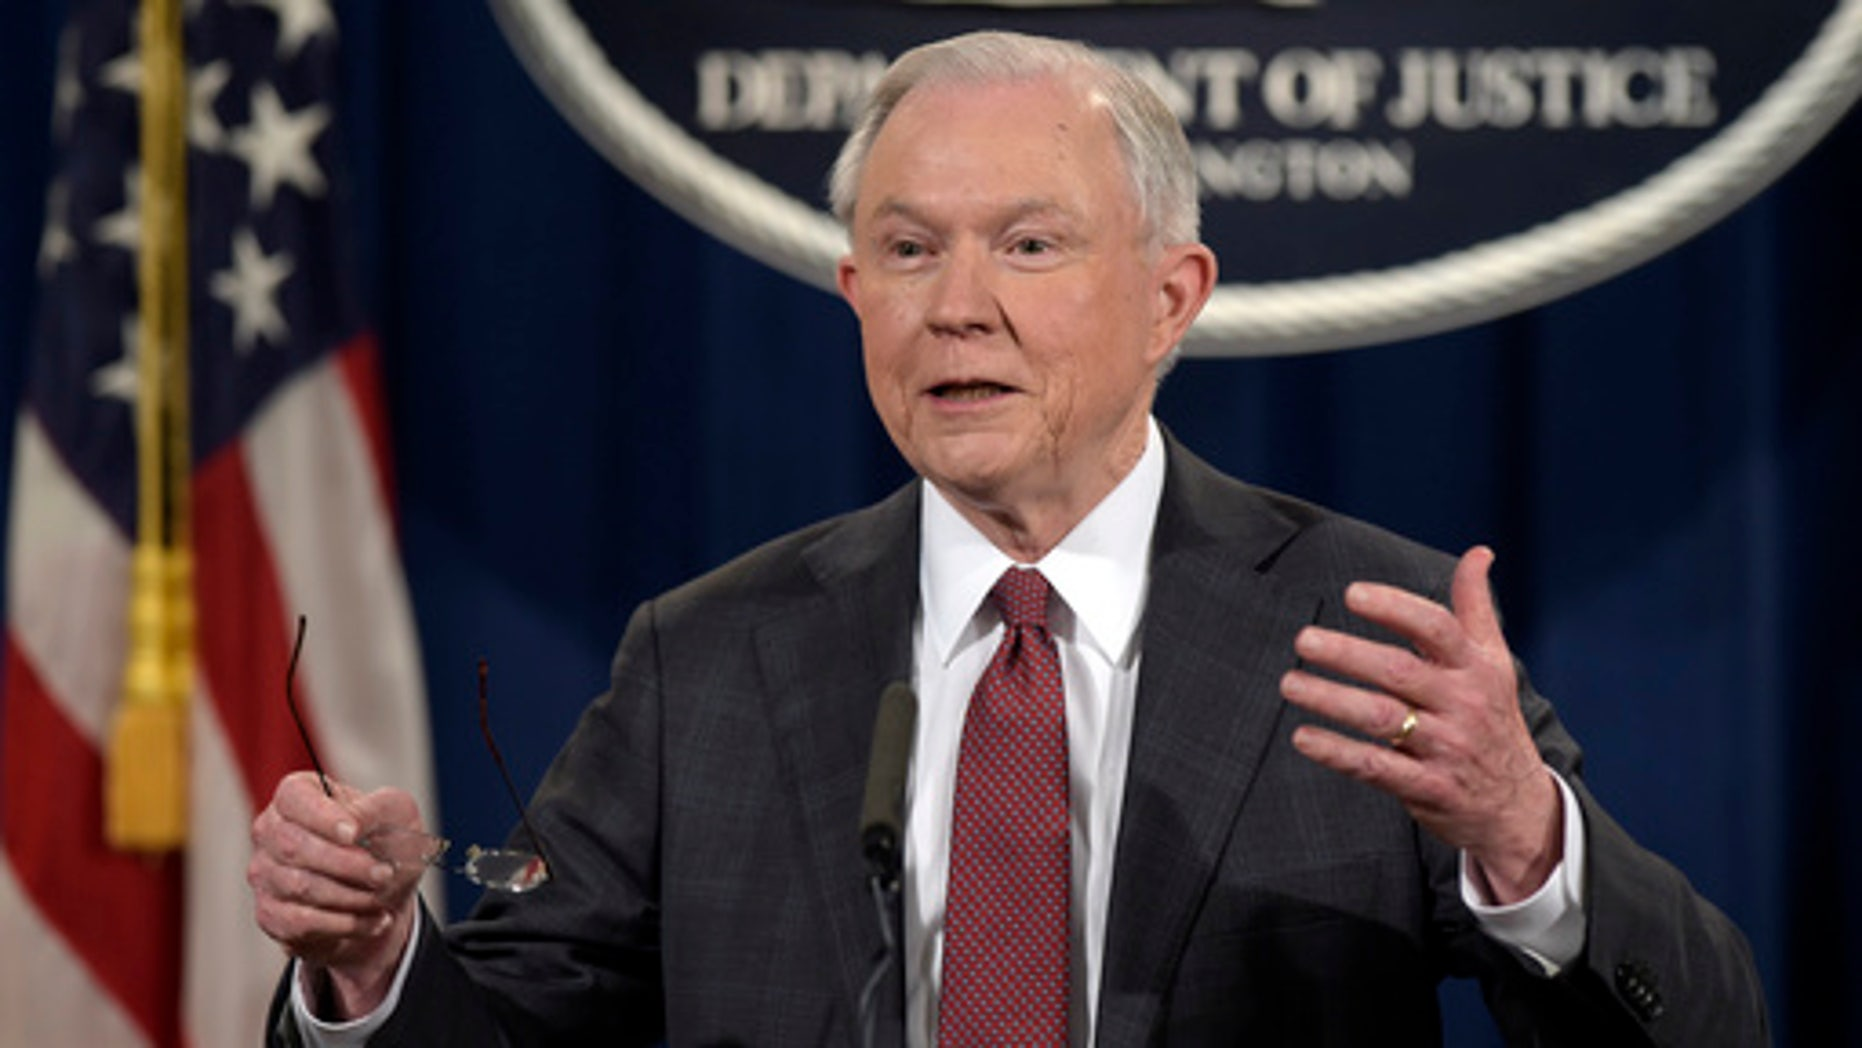 In this March 2, 2017, photo, Attorney General Jeff Sessions speaks during a news conference at the Justice Department in Washington.